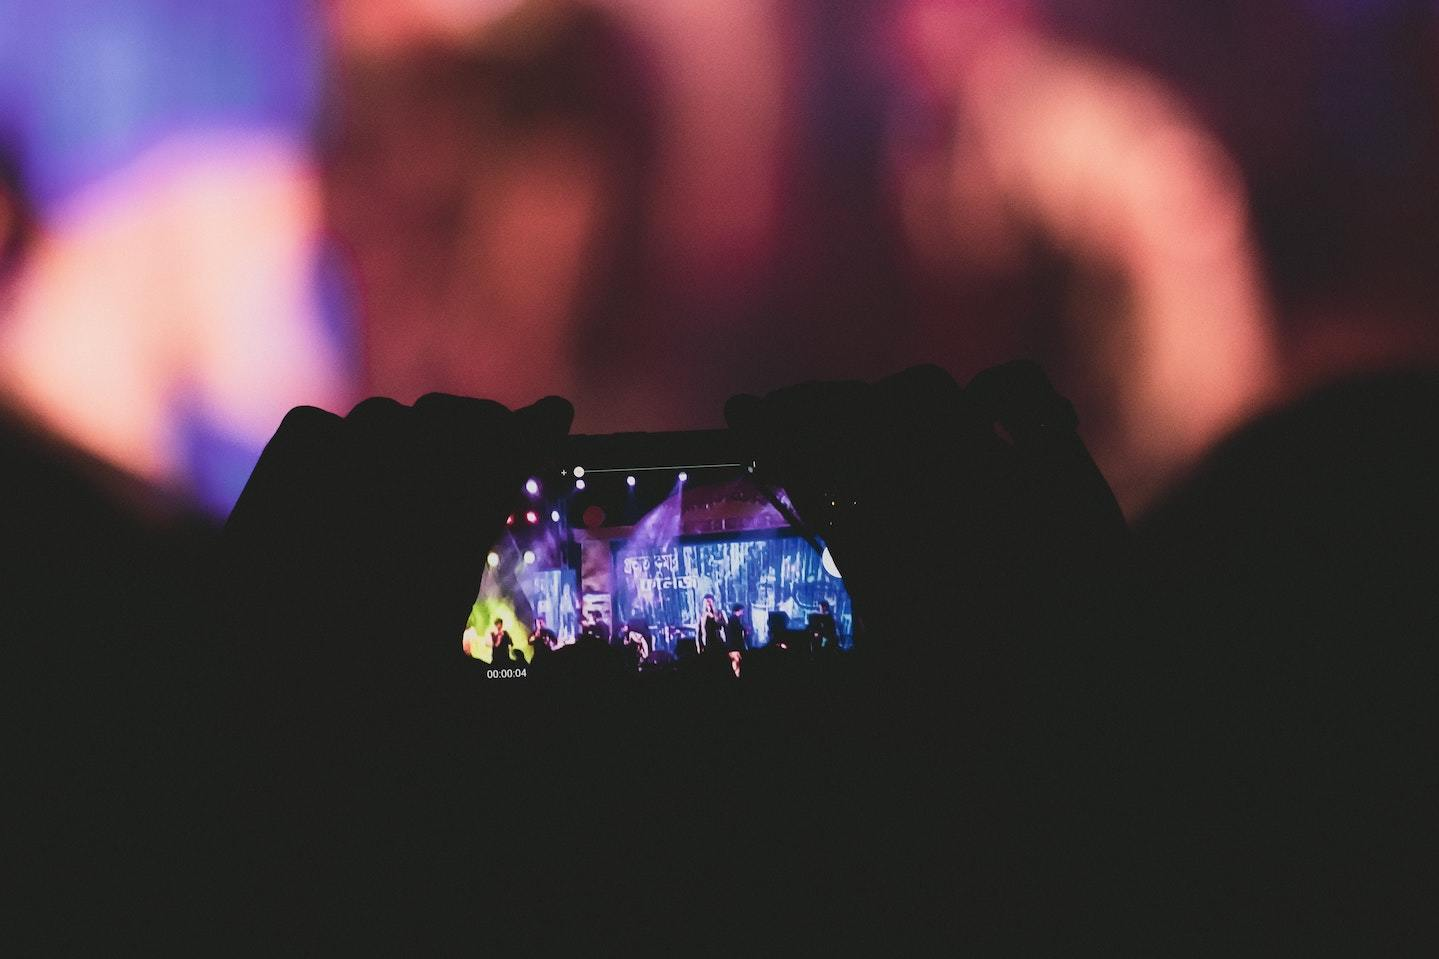 Phone held up to record concert